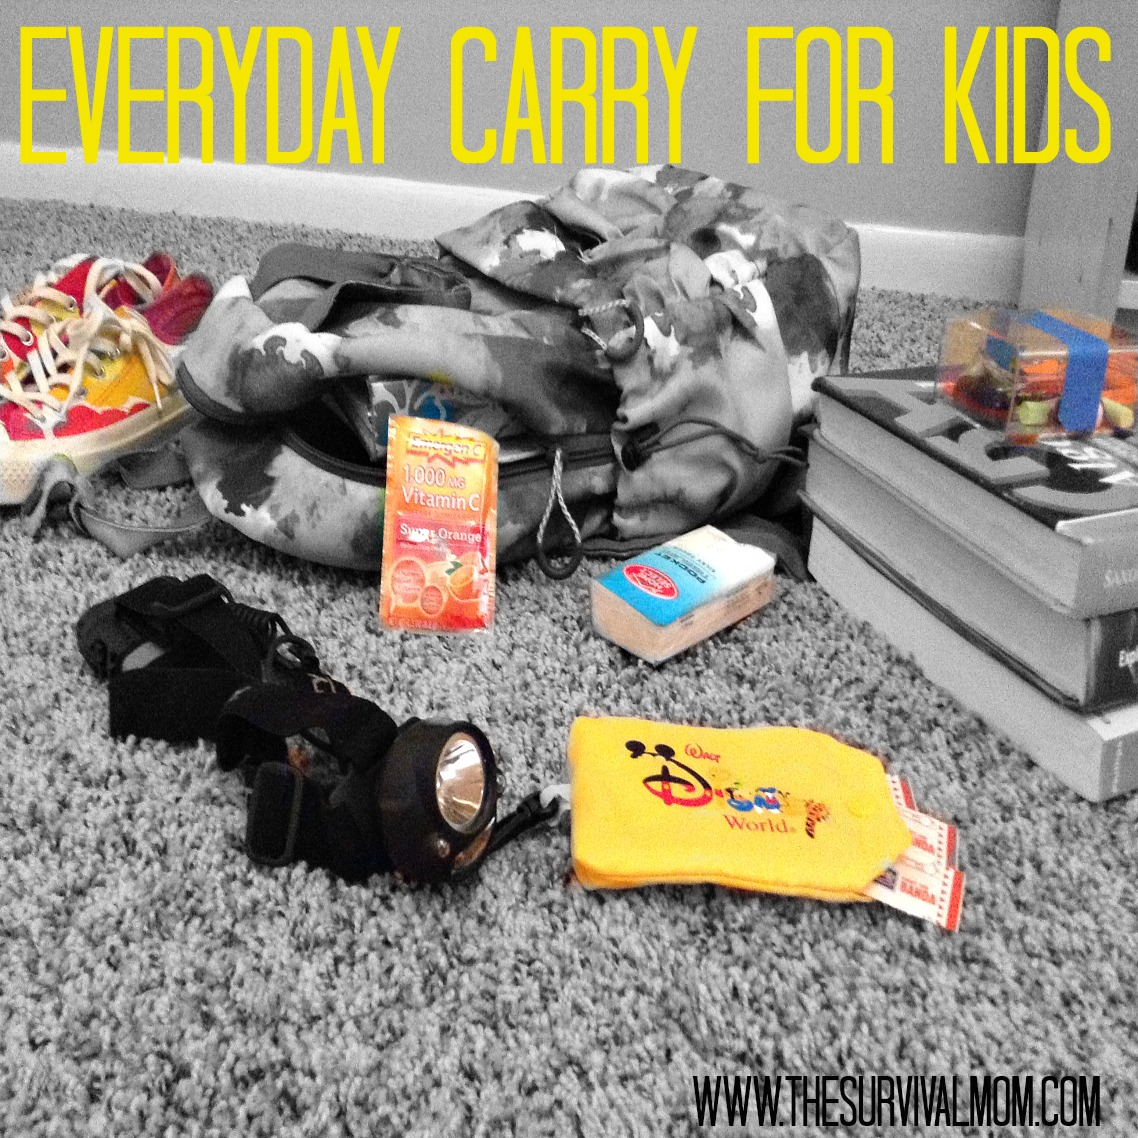 PicMonkey Everyday Carry for Kids